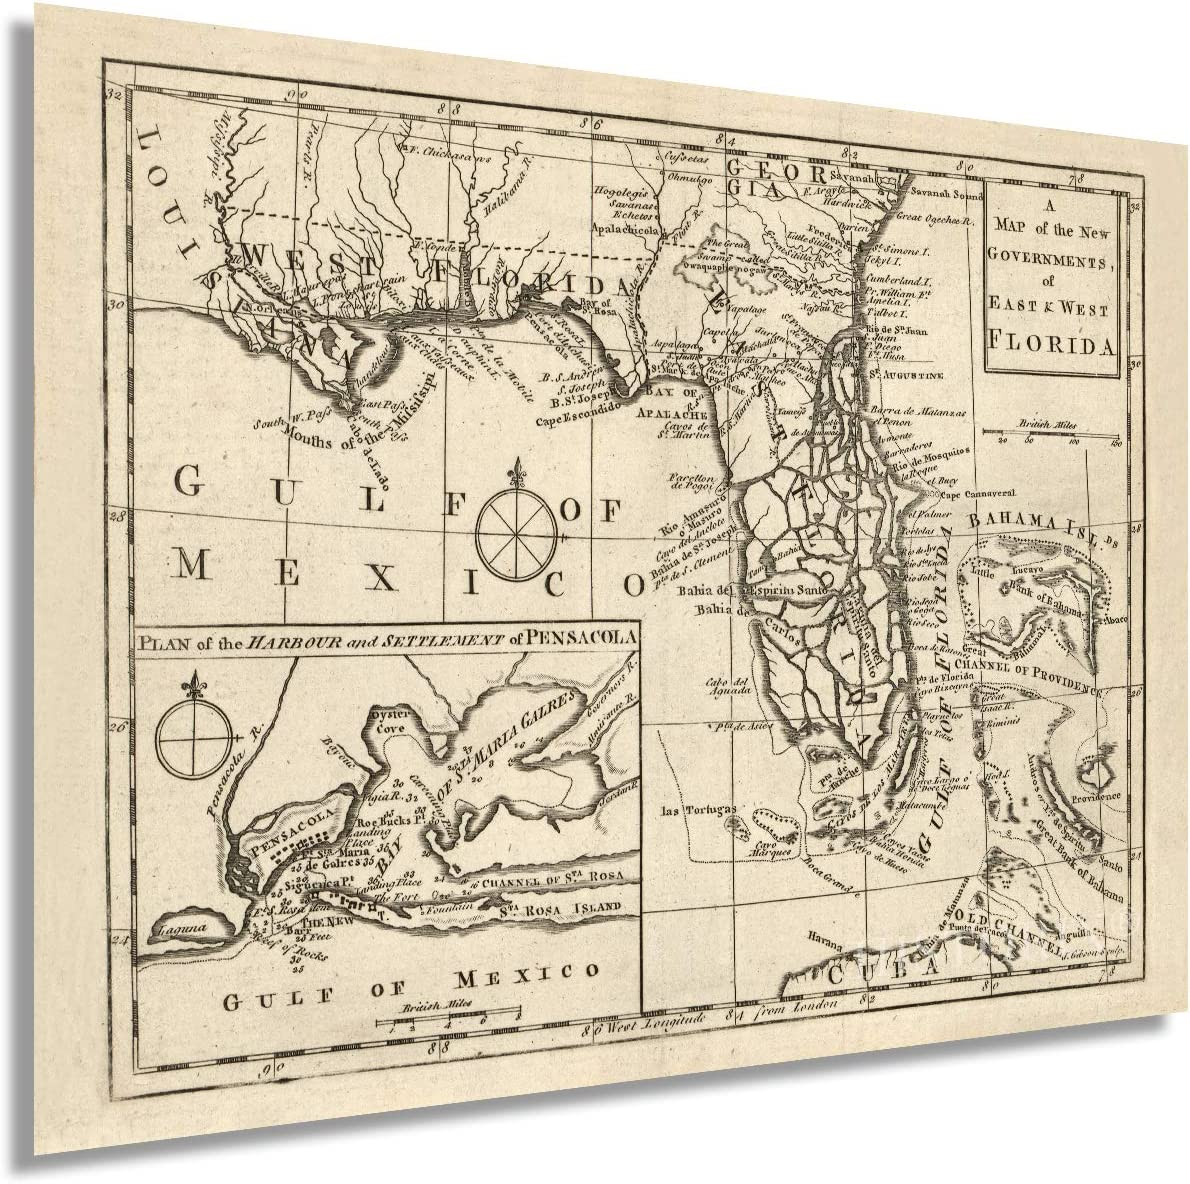 Historix Vintage 1763 East & West Florida Map - 18 x 24 Inch Vintage Map Wall Art - A Map of the New Governments Vintage Florida Map - Florida Map Wall Art - Vintage Florida Poster (2 sizes)